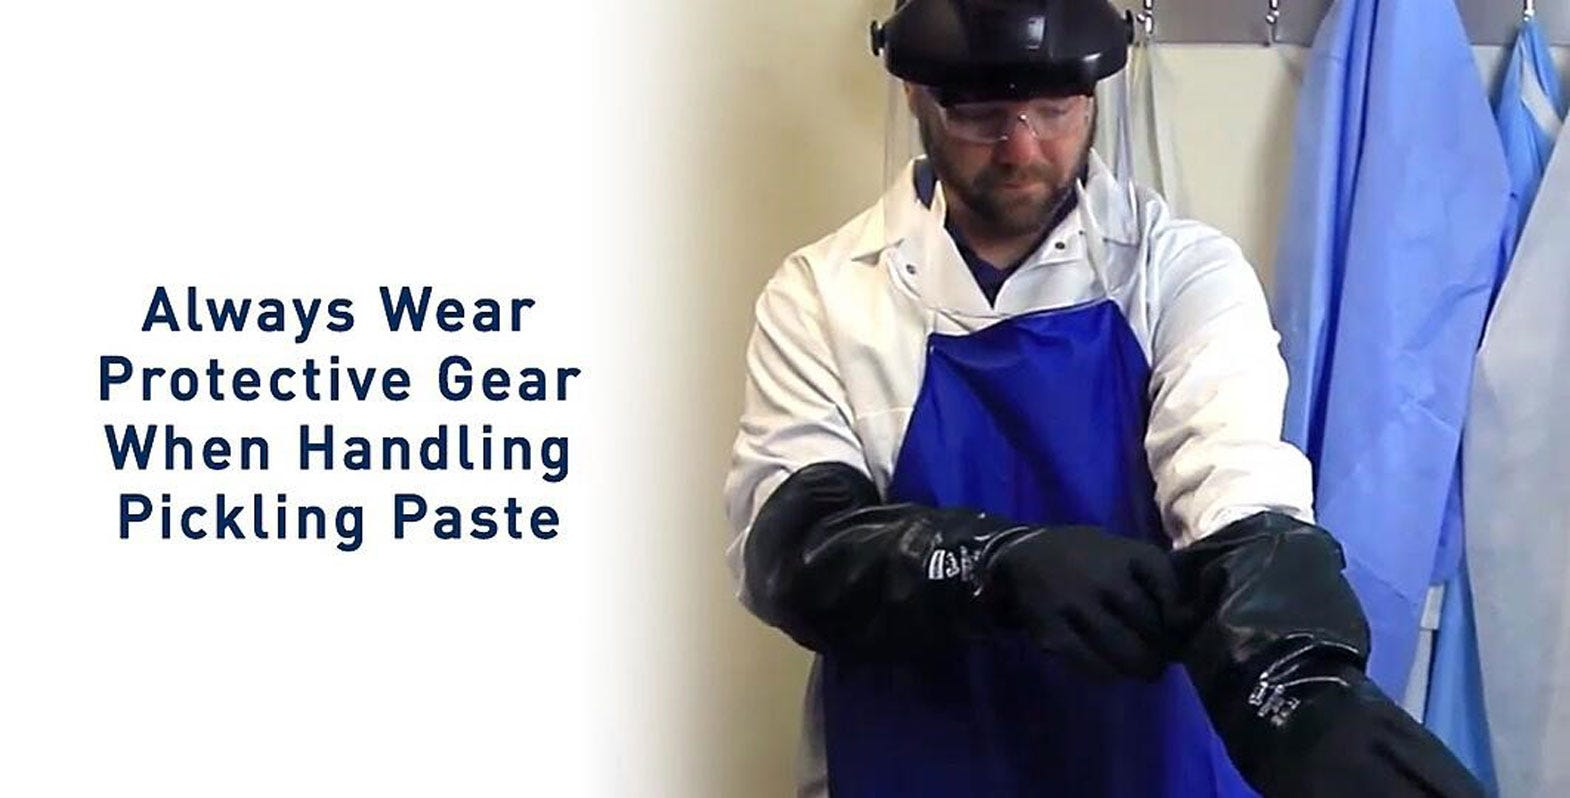 All you need to know about PPE for pickling paste